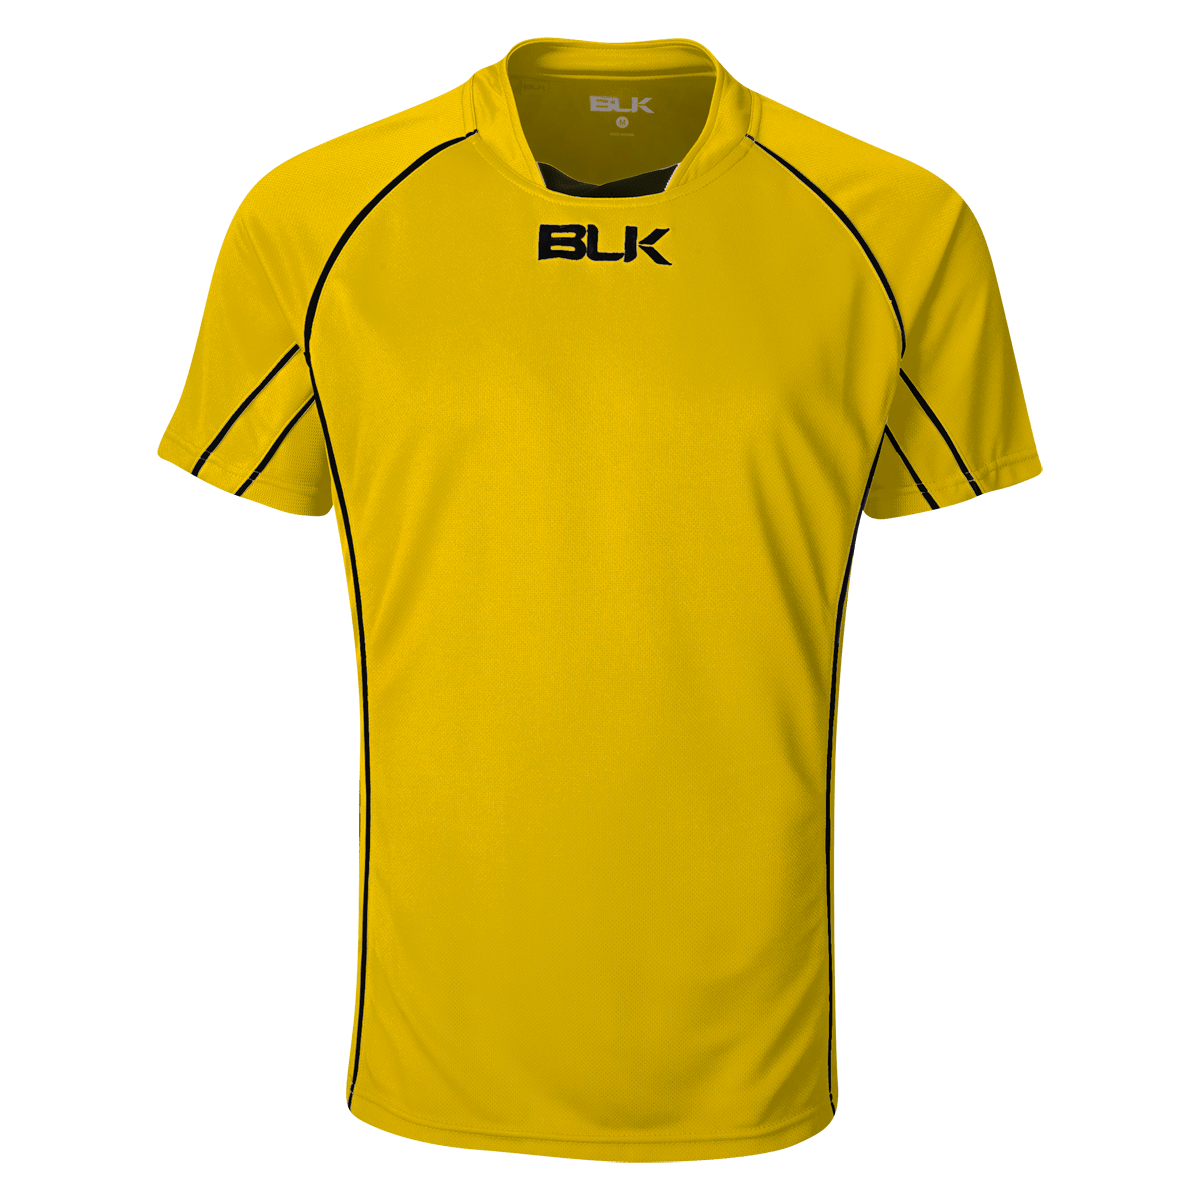 BLK Gold Youth Icon Rugby Jersey